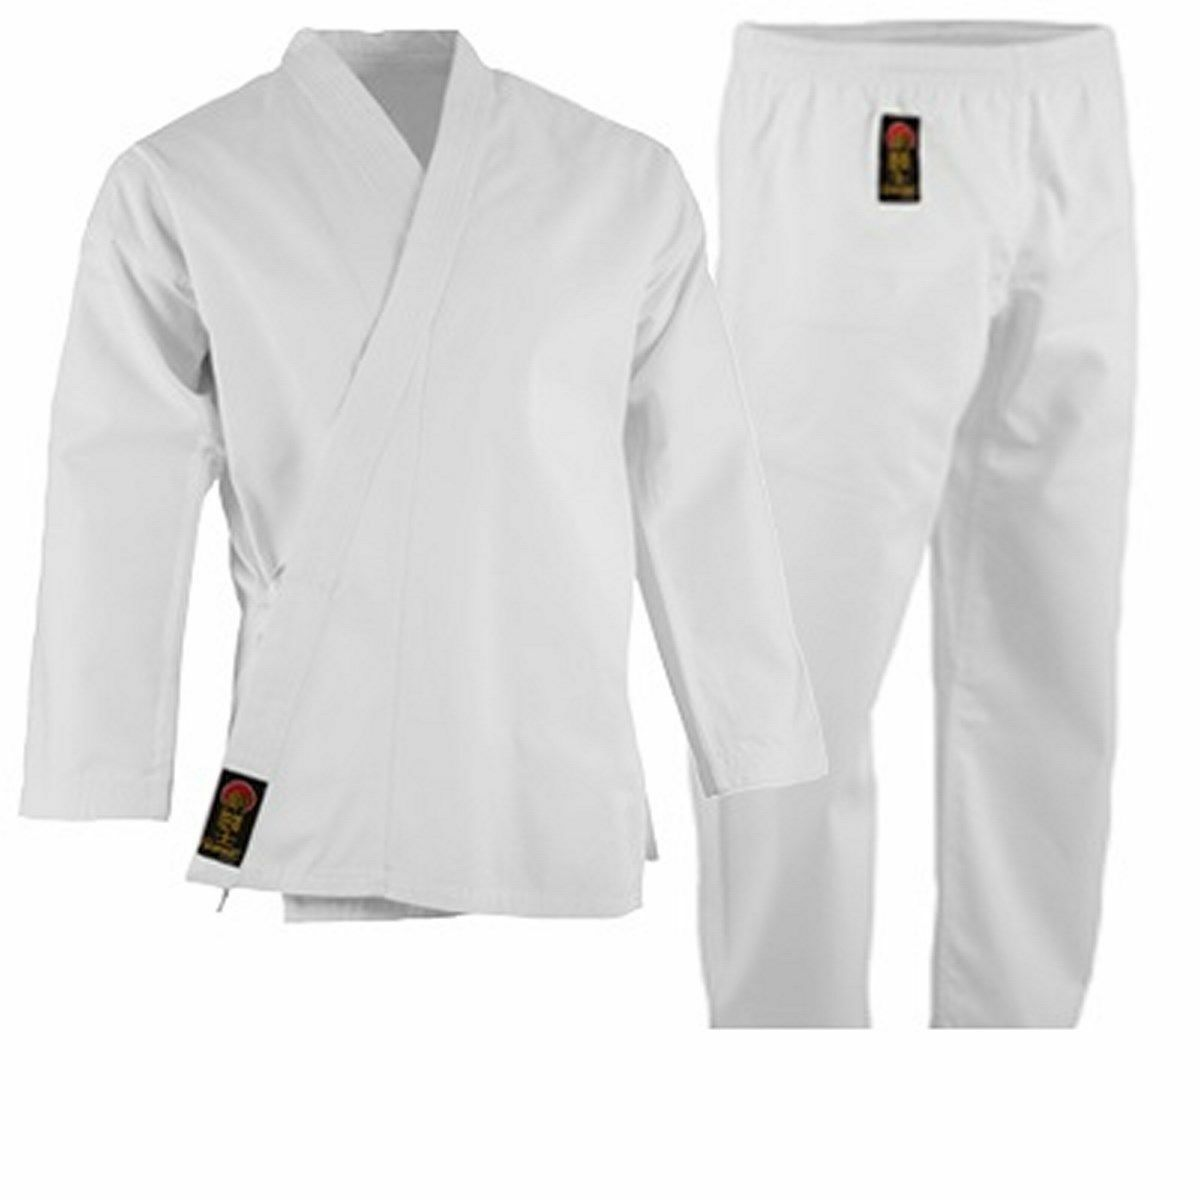 ProForce 7.5 oz. Medium Weight Uniform WHITE For Karate TKD Training FREE BELT